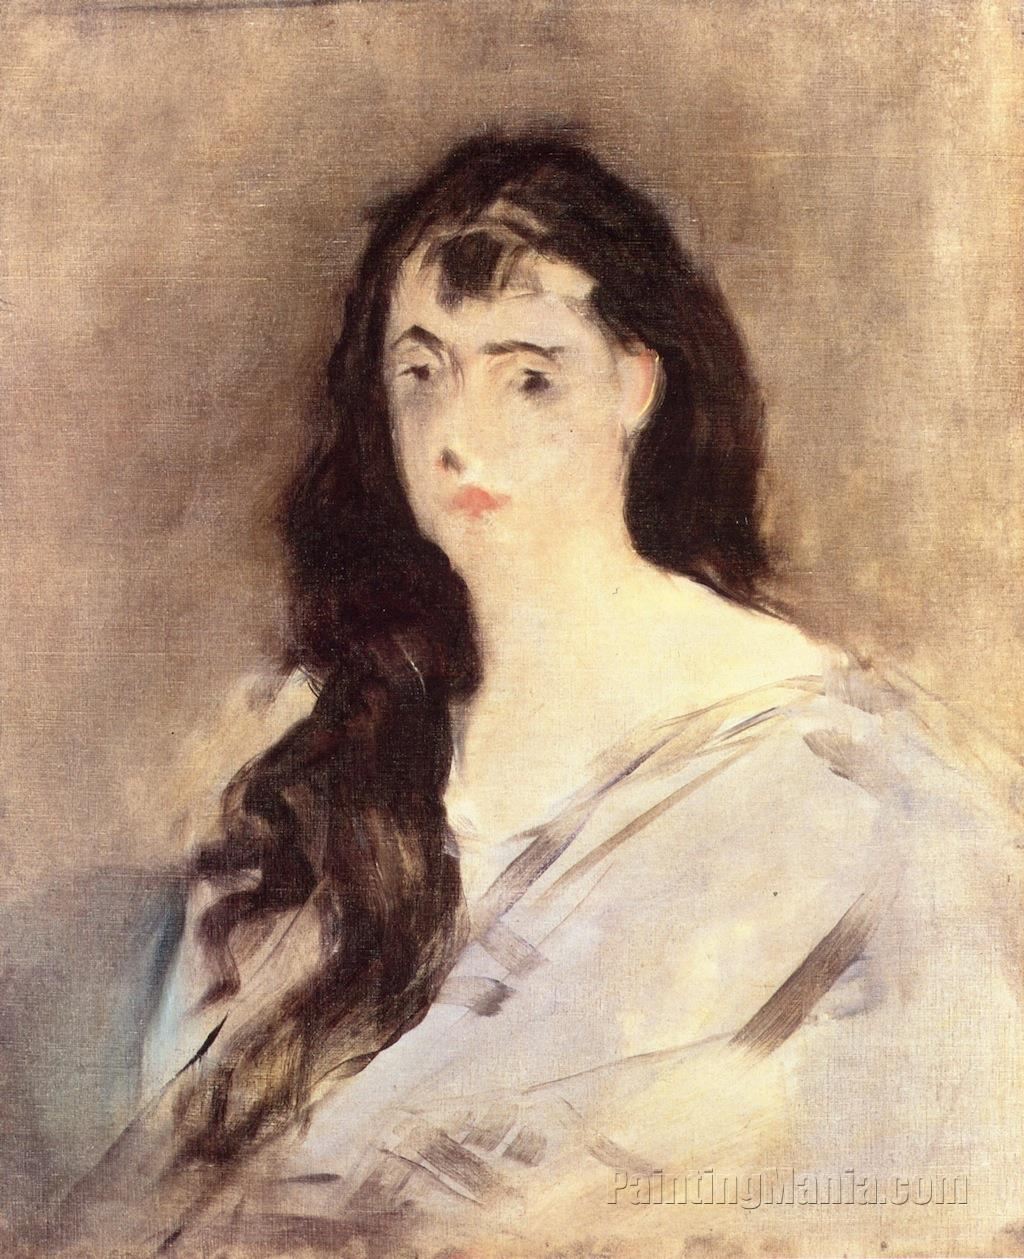 Young Woman with Disheveled Hair